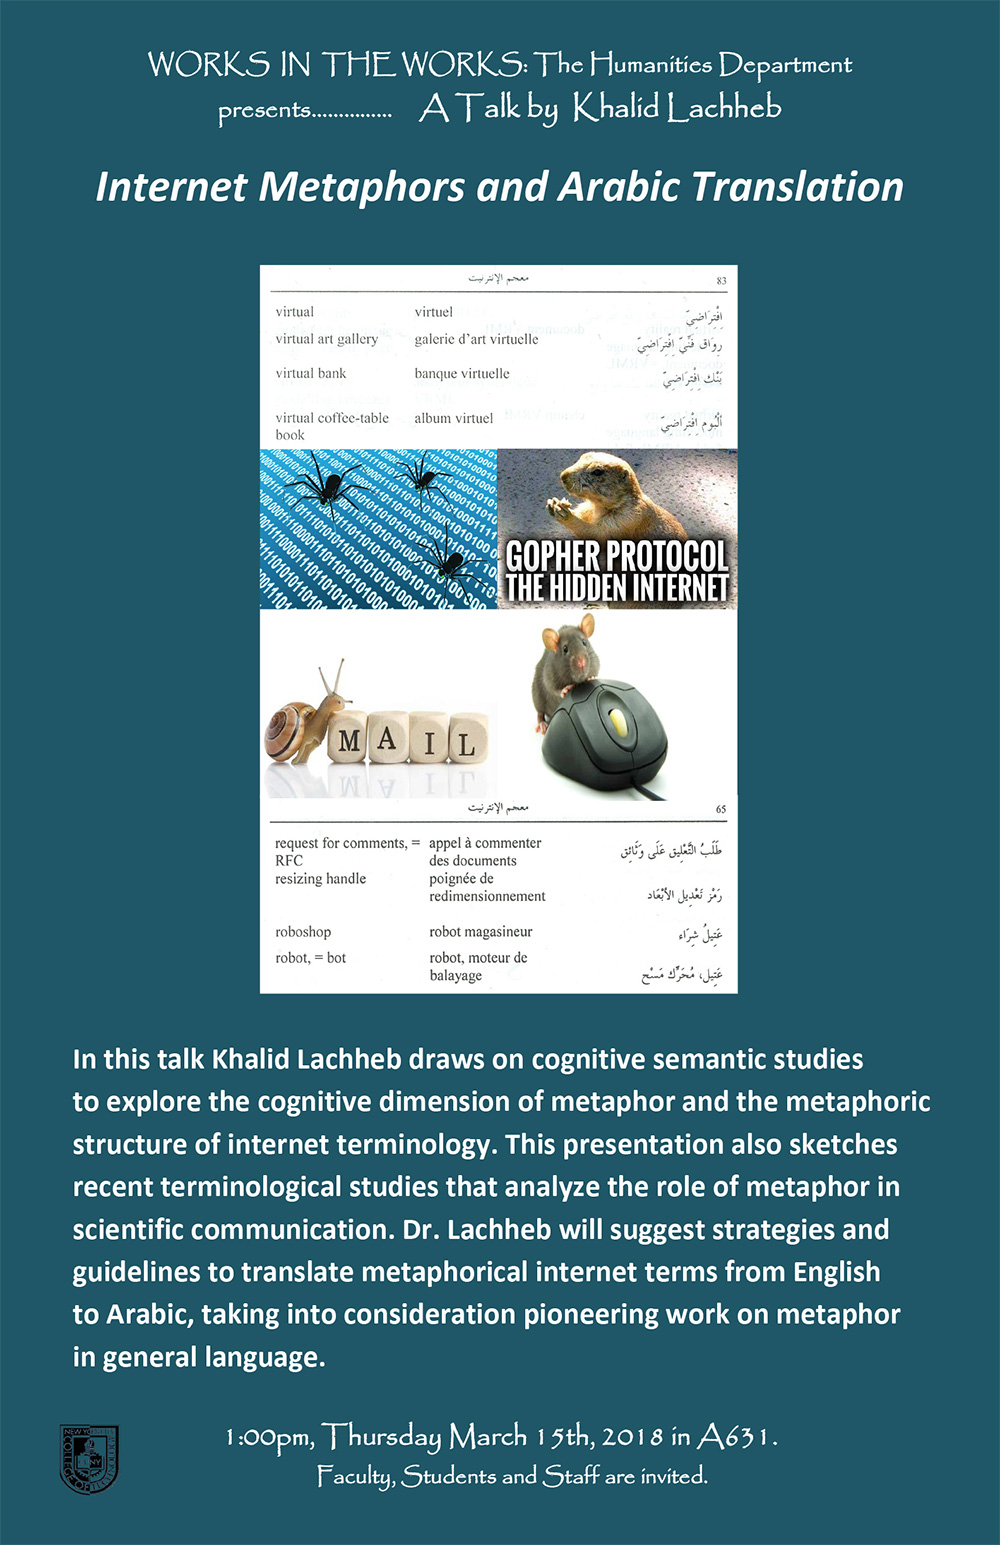 Works in the Works - Internet Metaphors and Arabic Translation